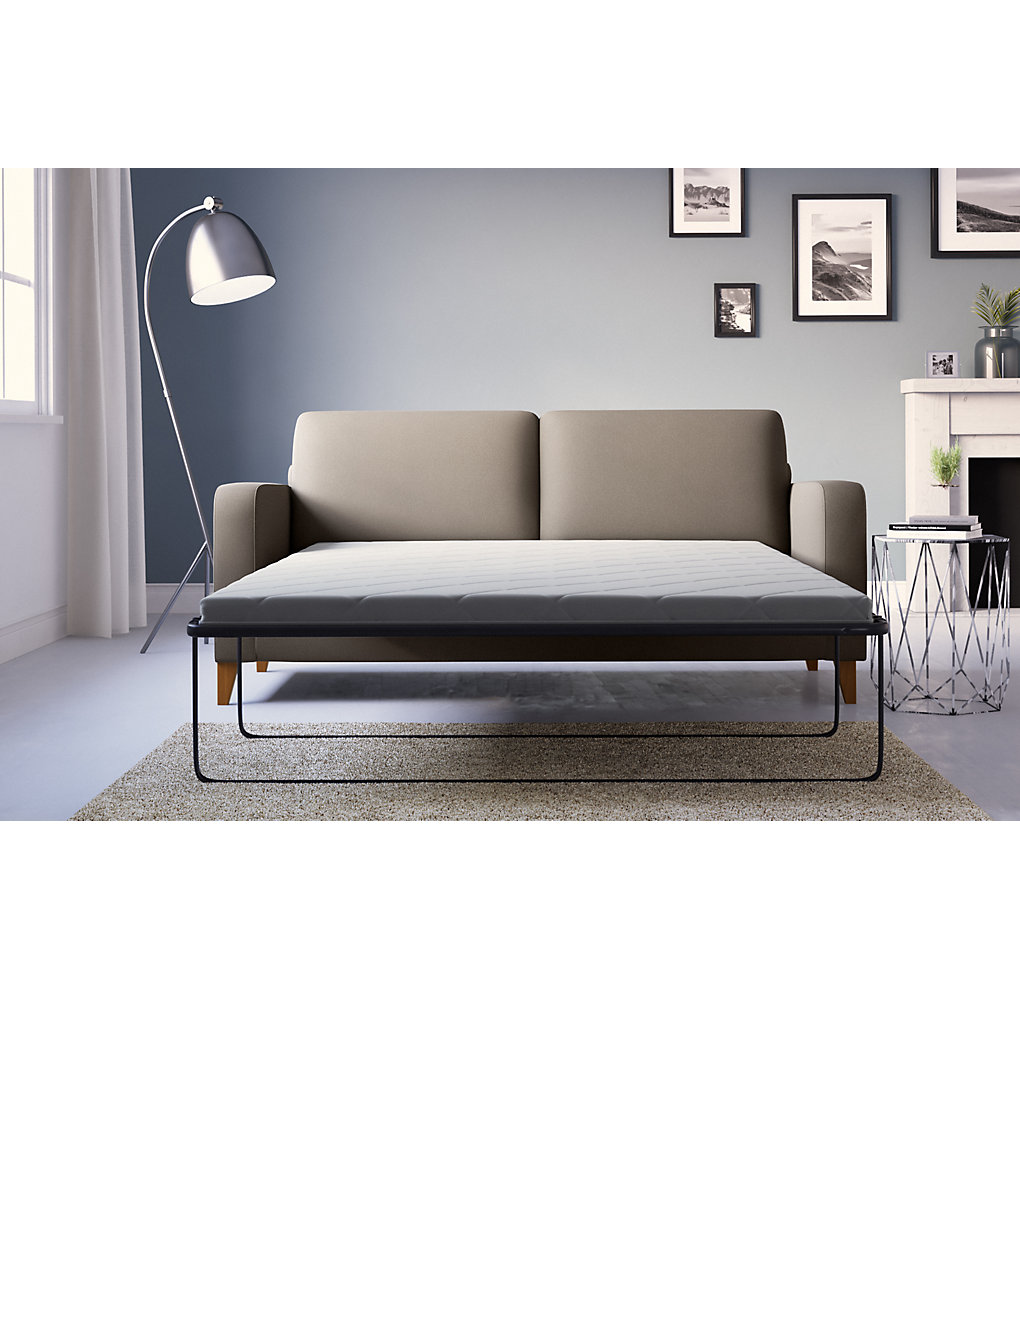 Marks and spencer sofa bed Tromso corner sofa bed review